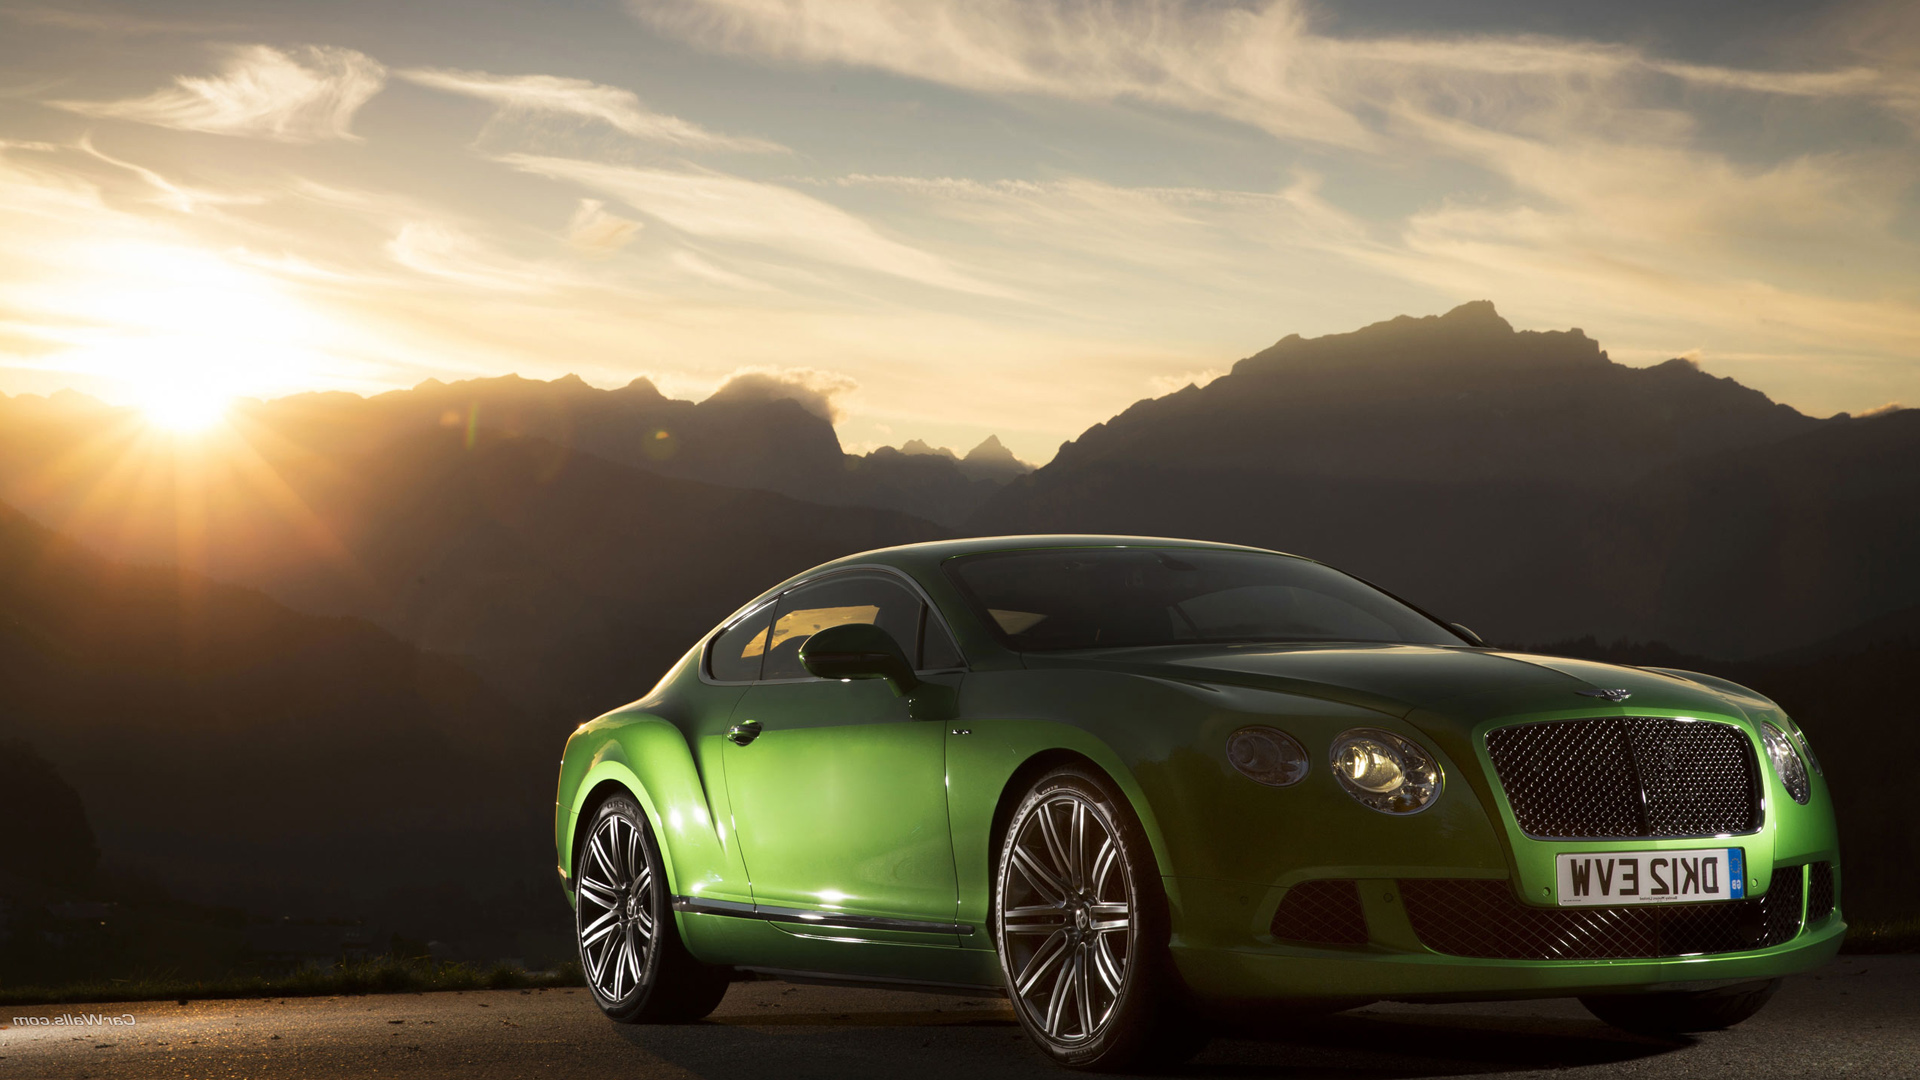 2013 Bentley Continental Gt Speed 2 Wallpaper Hd Car Wallpapers Id 3131